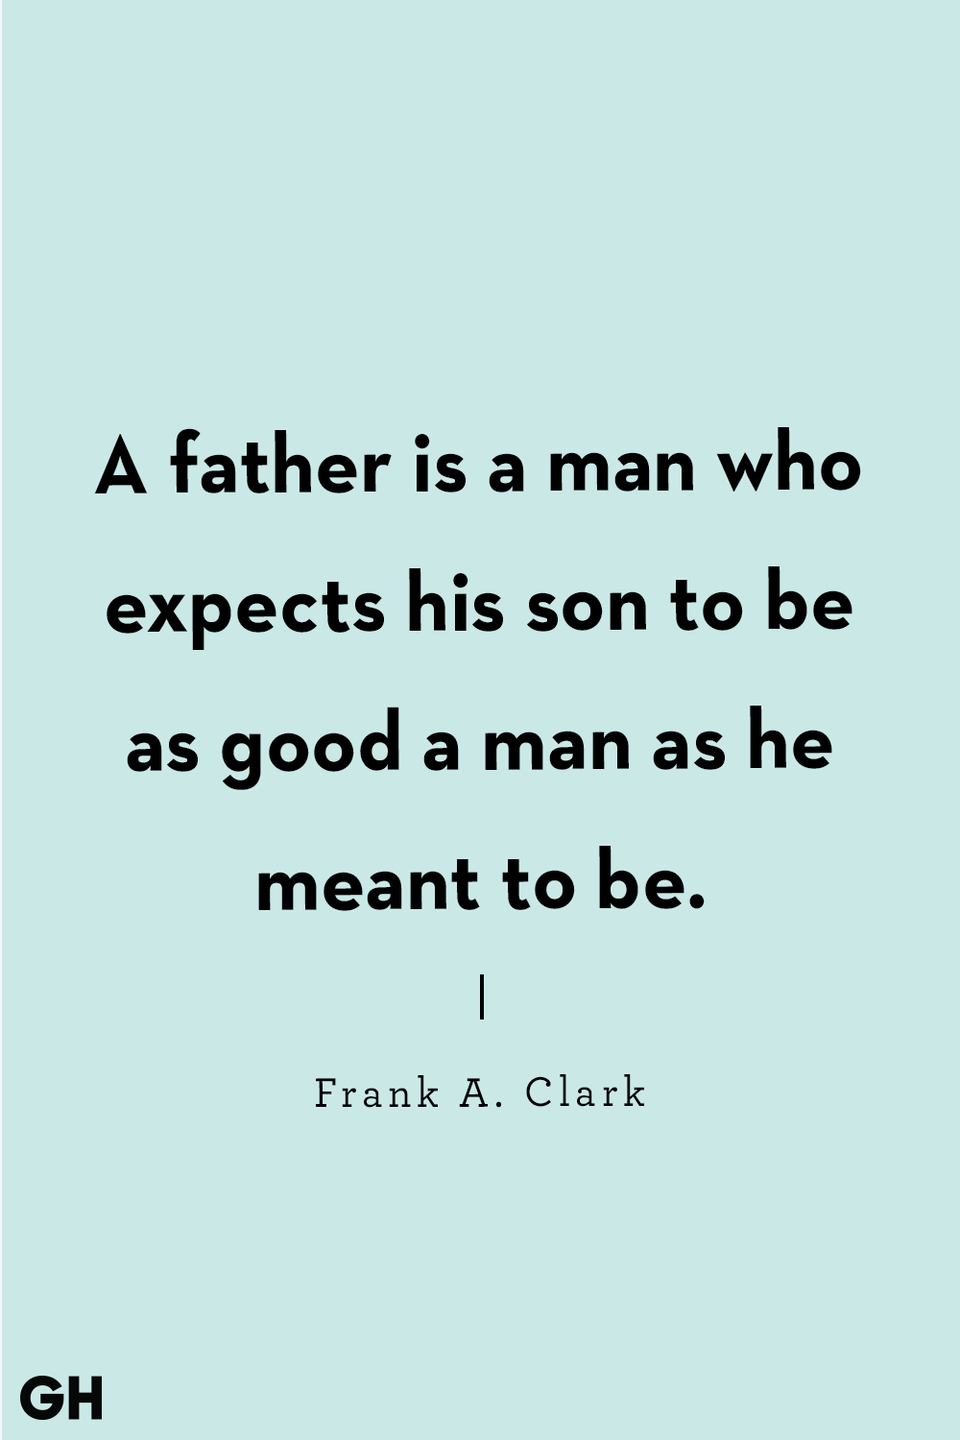 <p>A father is a man who expects his son to be as good a man as he meant to be.</p>